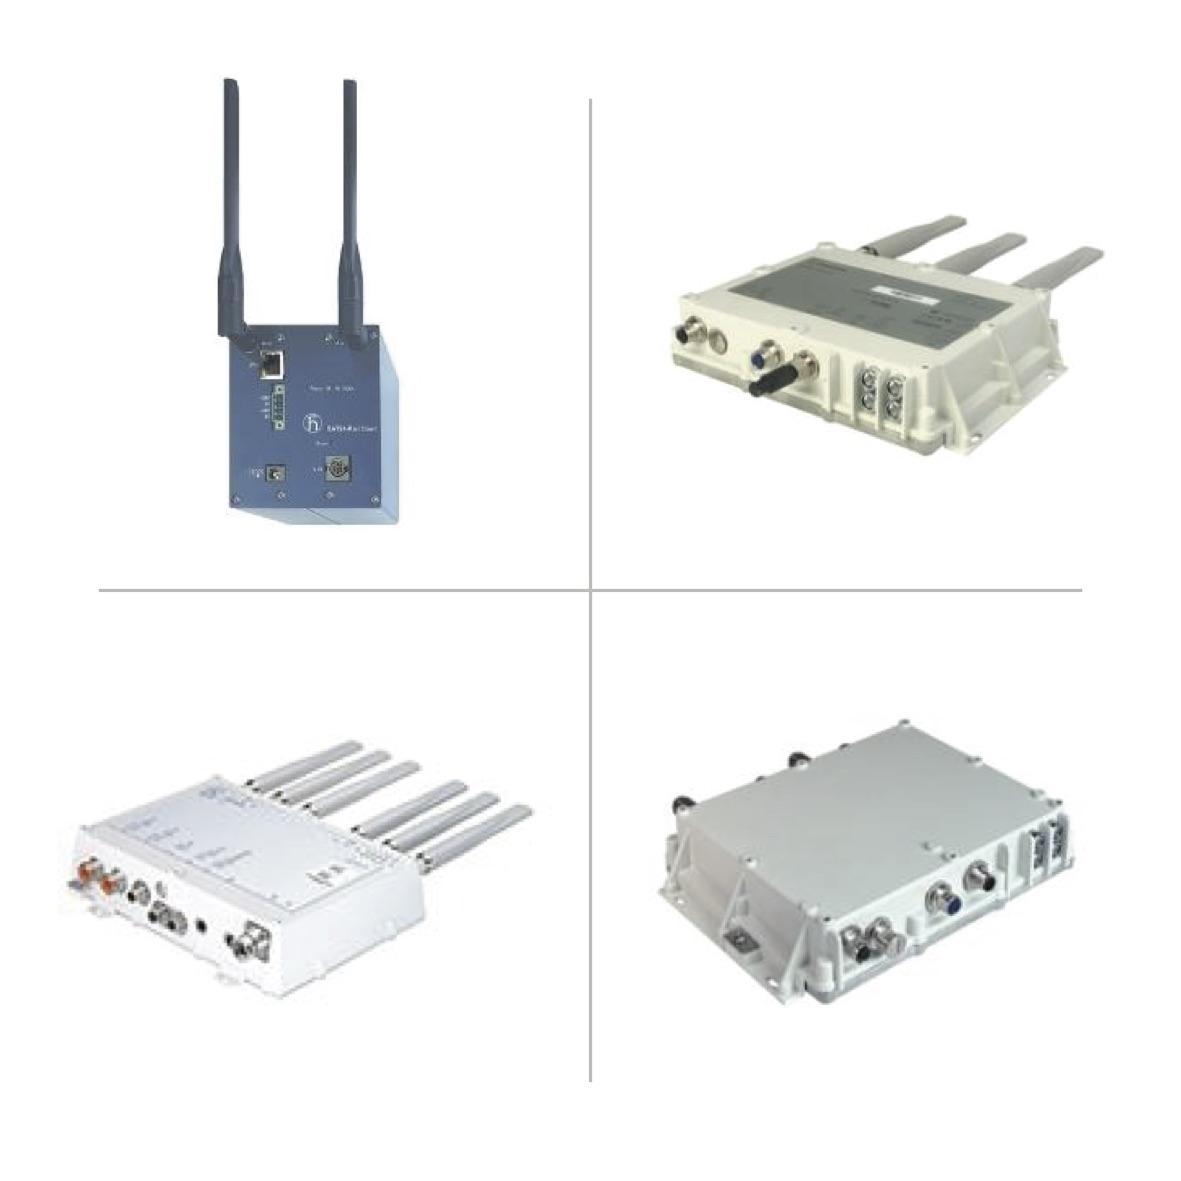 Hirschmann WLAN Industrial Wireless LAN